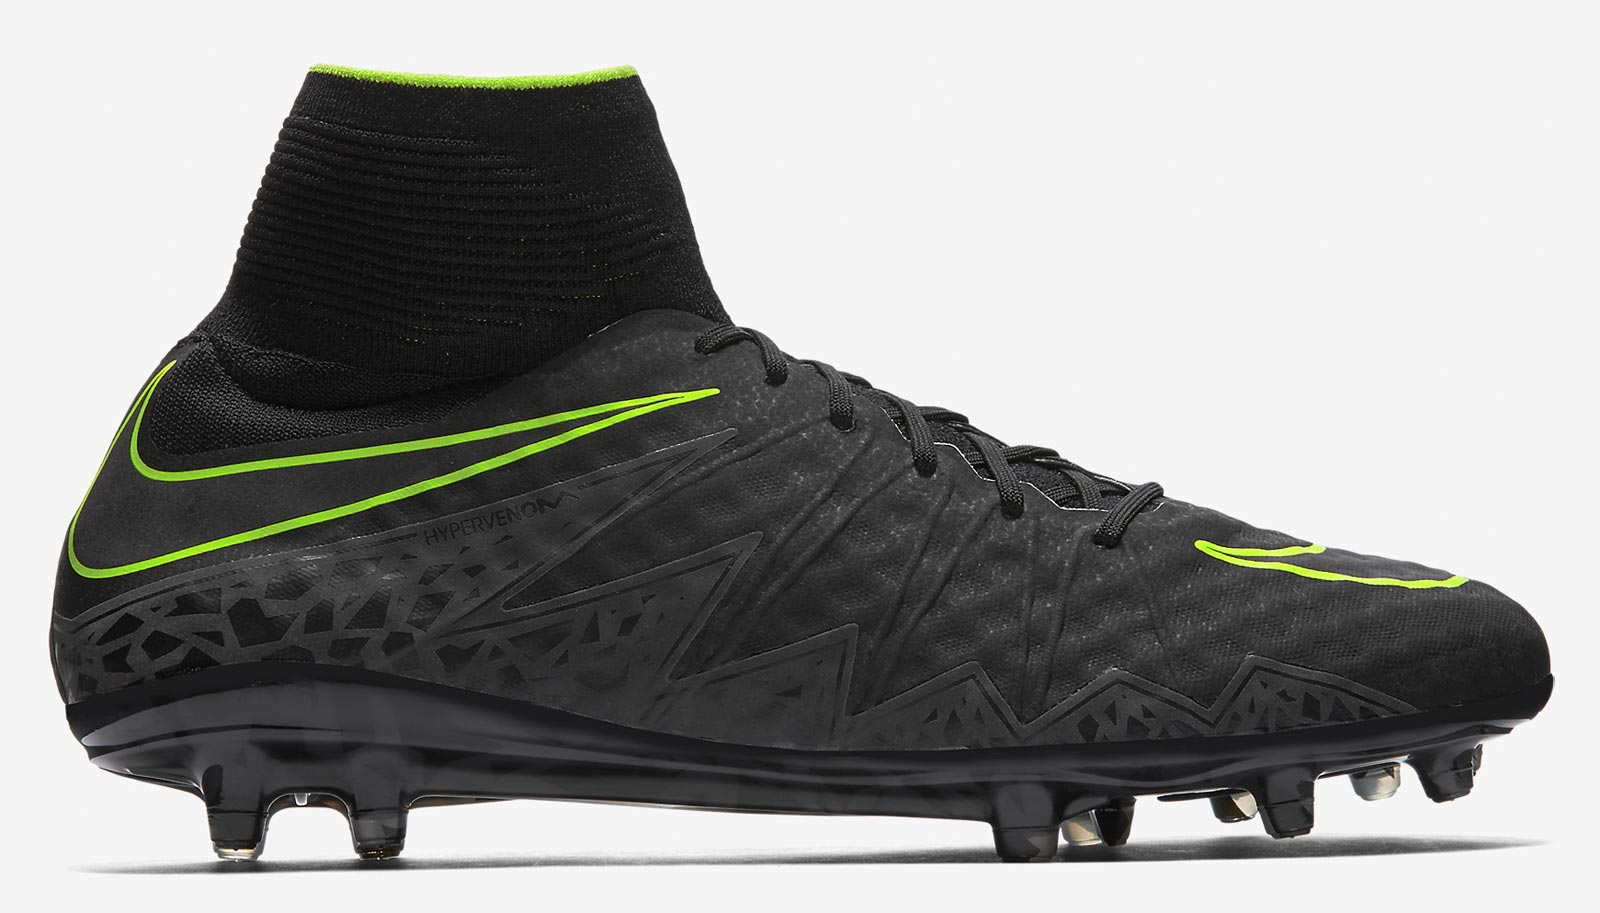 nike pitch dark football boots collection released footy. Black Bedroom Furniture Sets. Home Design Ideas